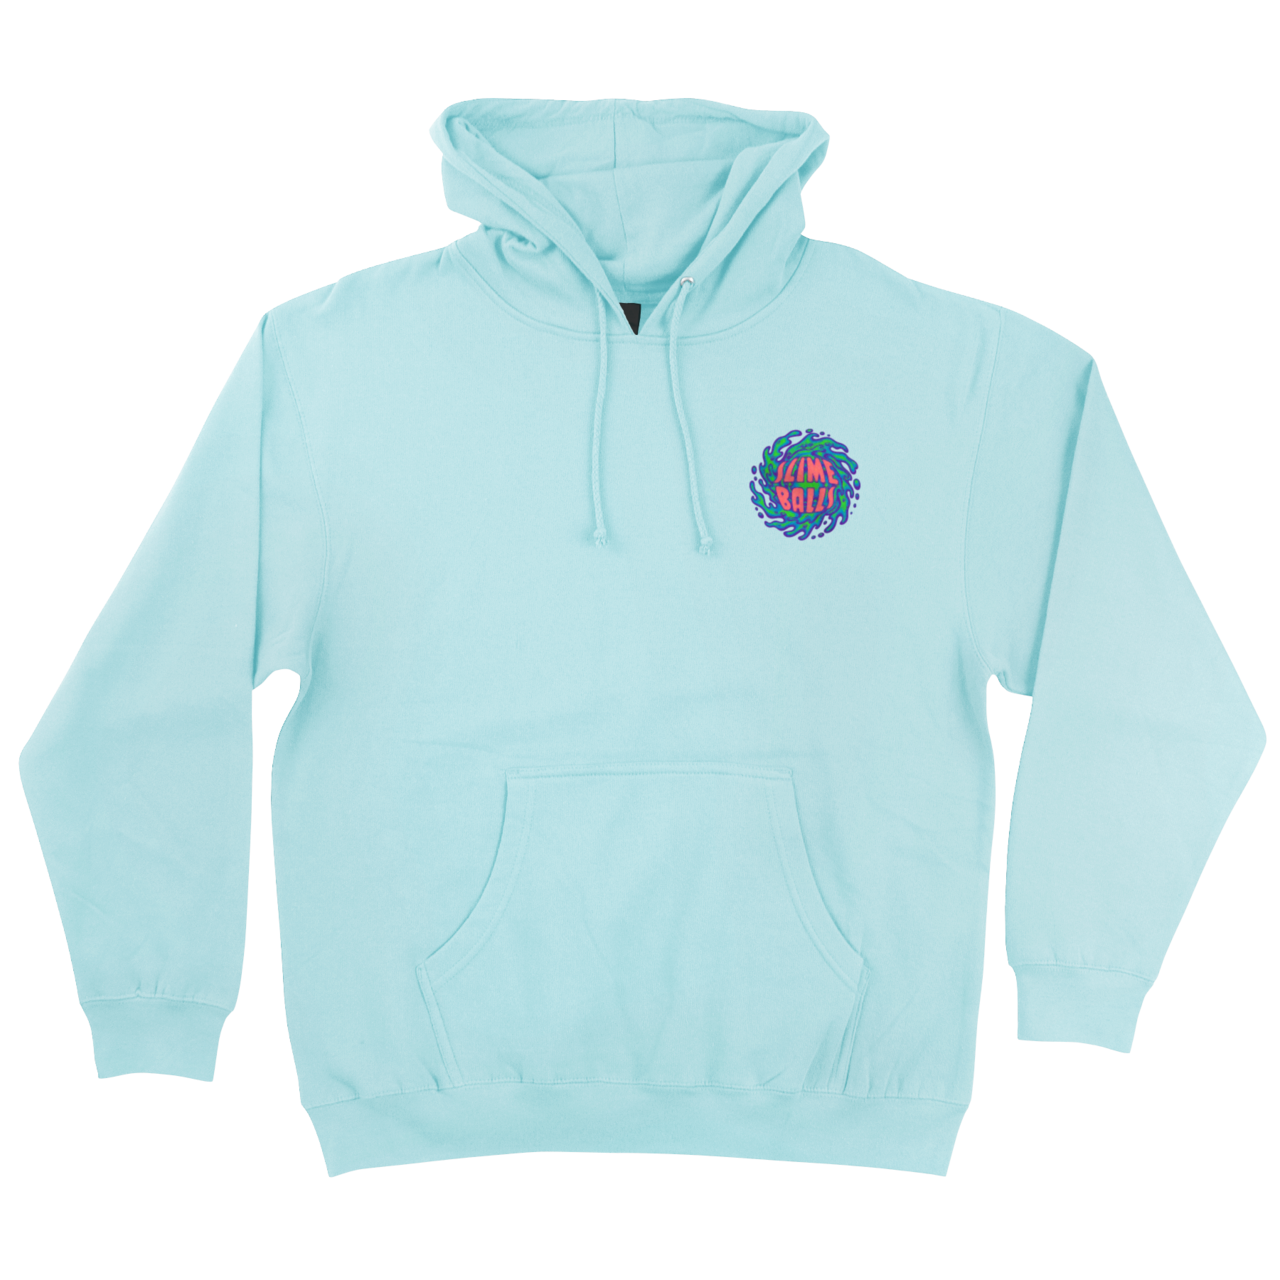 Slime Balls Logo Hooded Sweatshirt mint